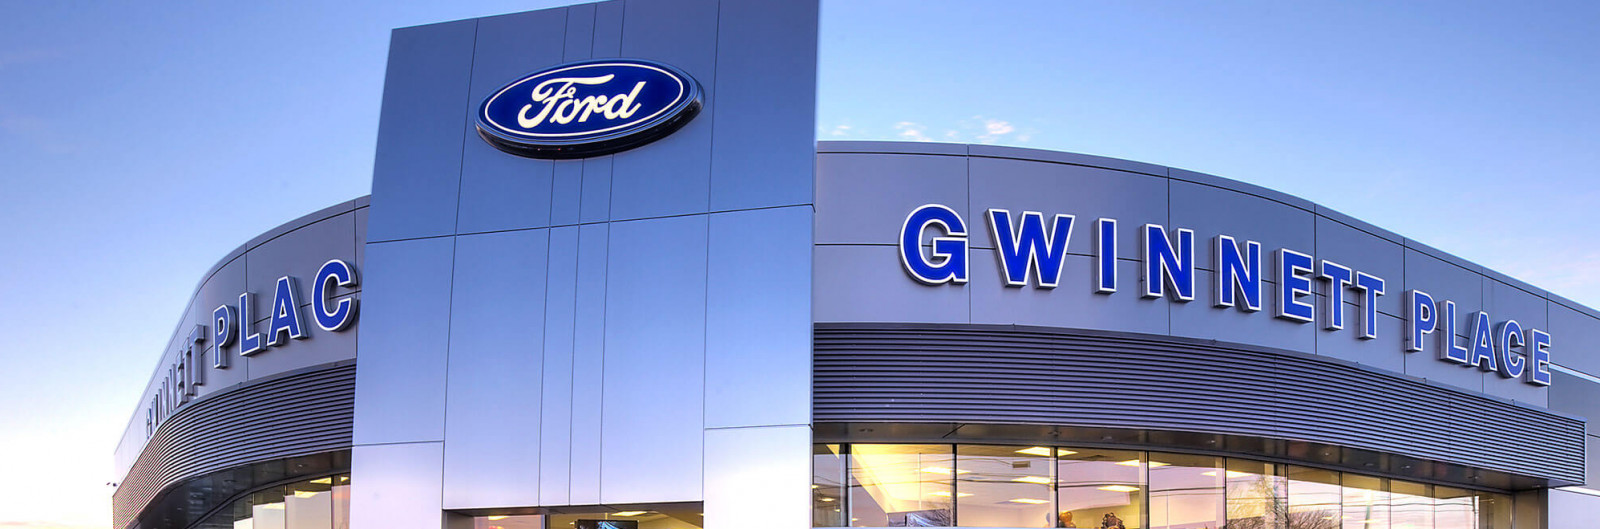 Using picture-perfect towers to unify more than 3,500 Ford dealerships